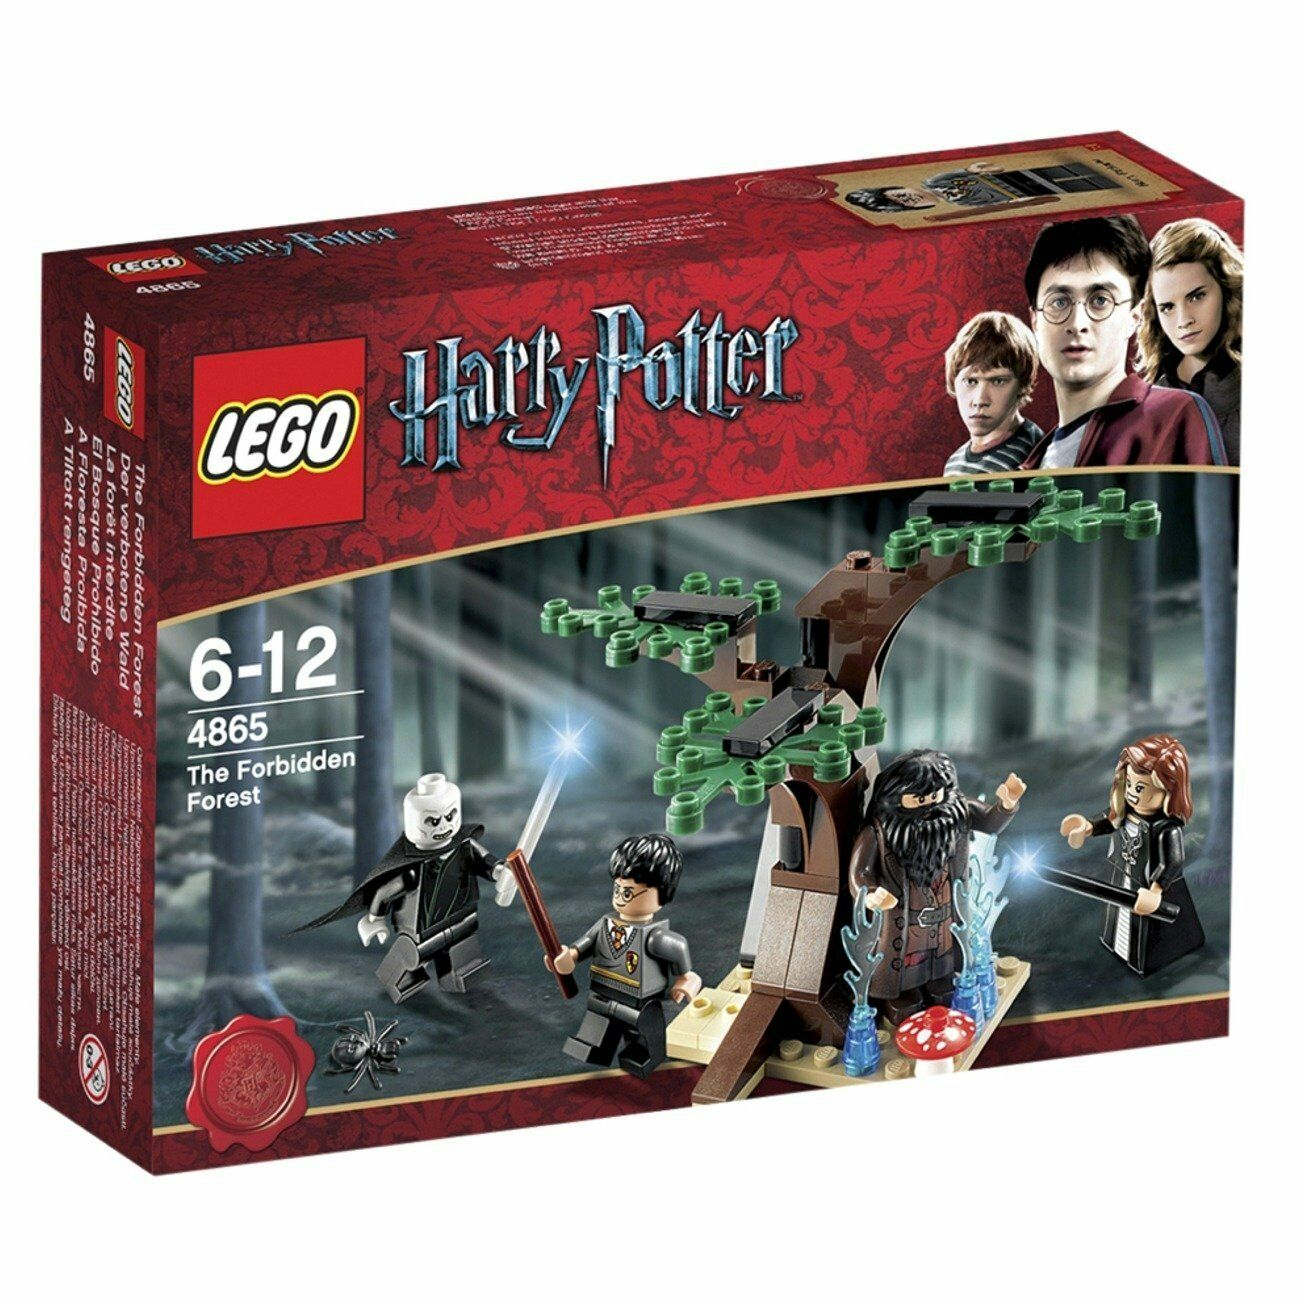 NEW IN BOX - LEGO Harry Potter The Forbidden Forest - 4865 - 64 pieces - RETIrouge